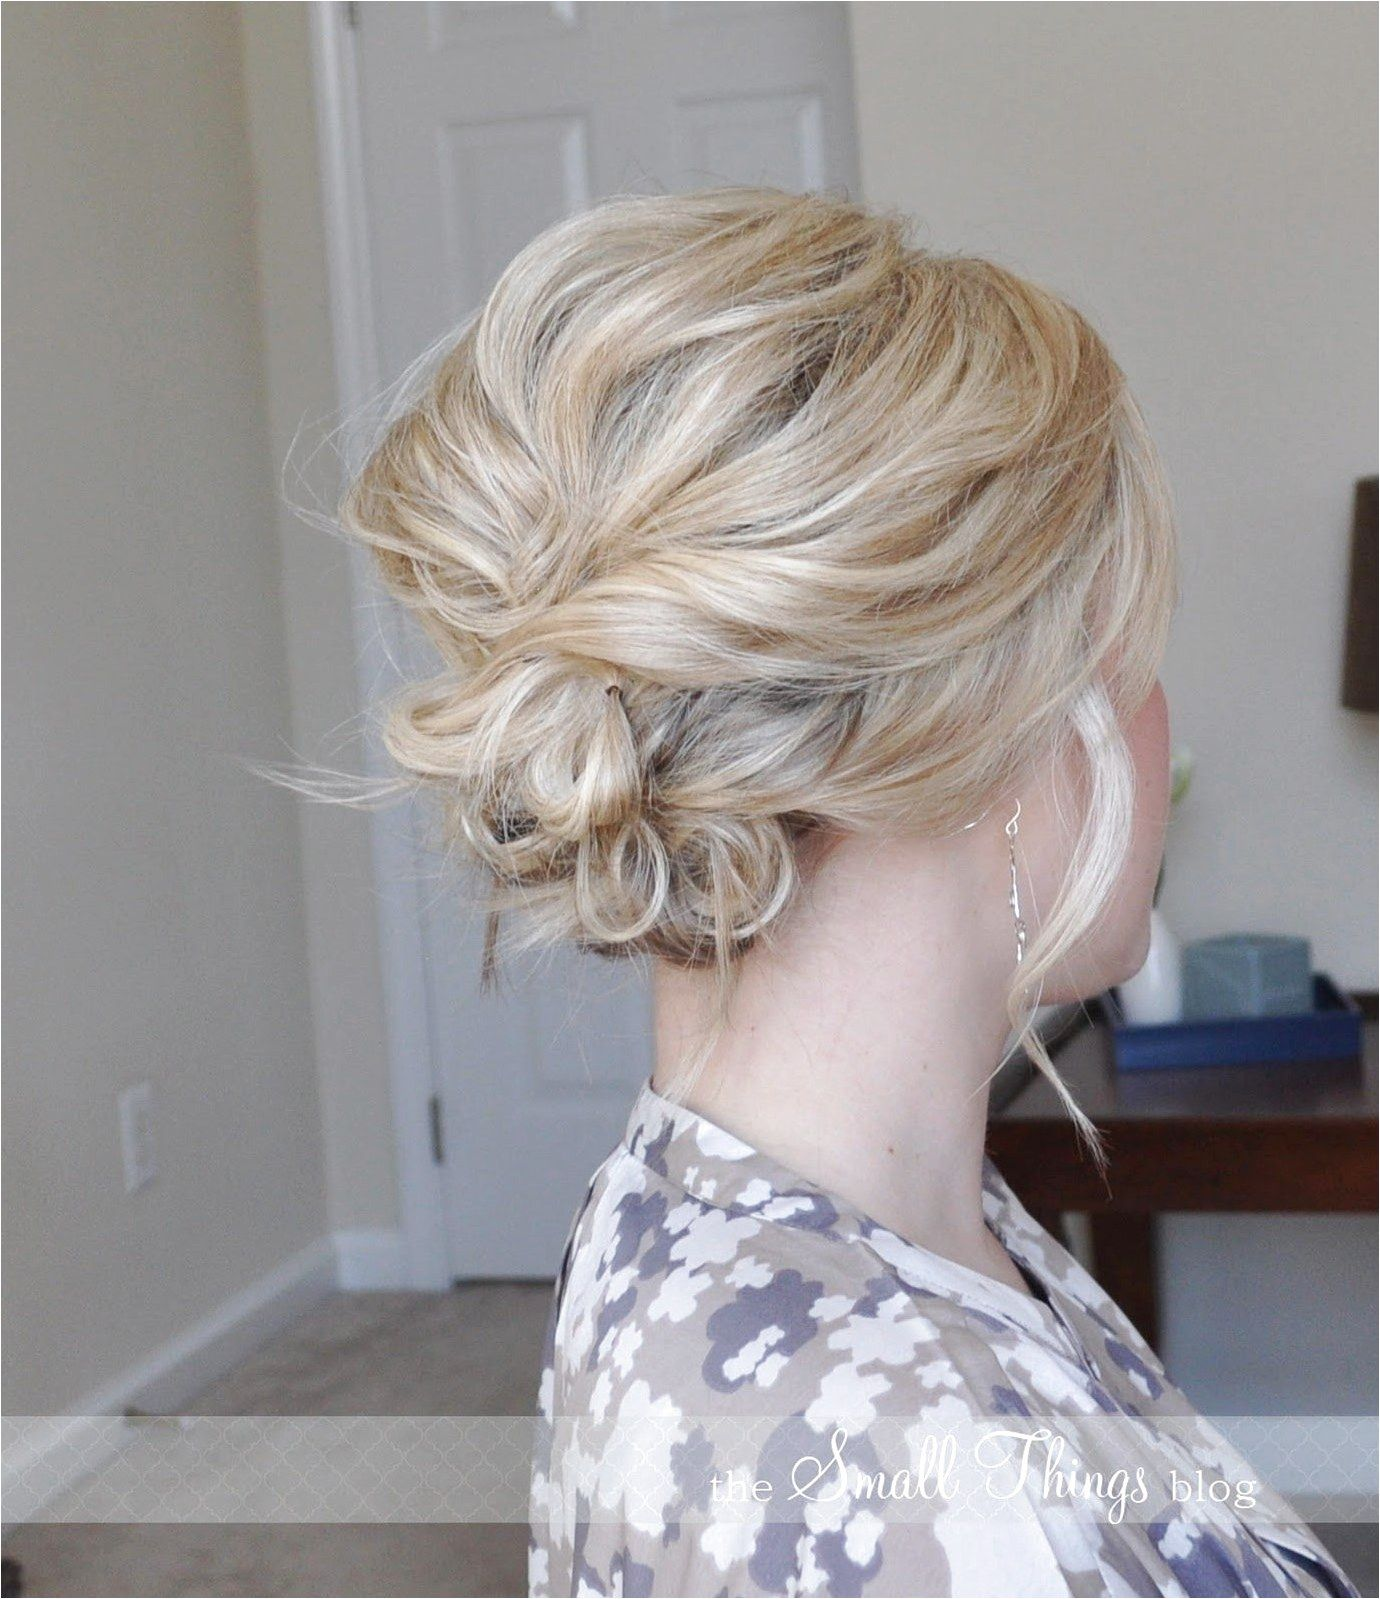 The Messy Side Updo Totally Nailed This Win Easypromhairstyles Click For Info Short Hair Updo Hair Styles Hair Lengths